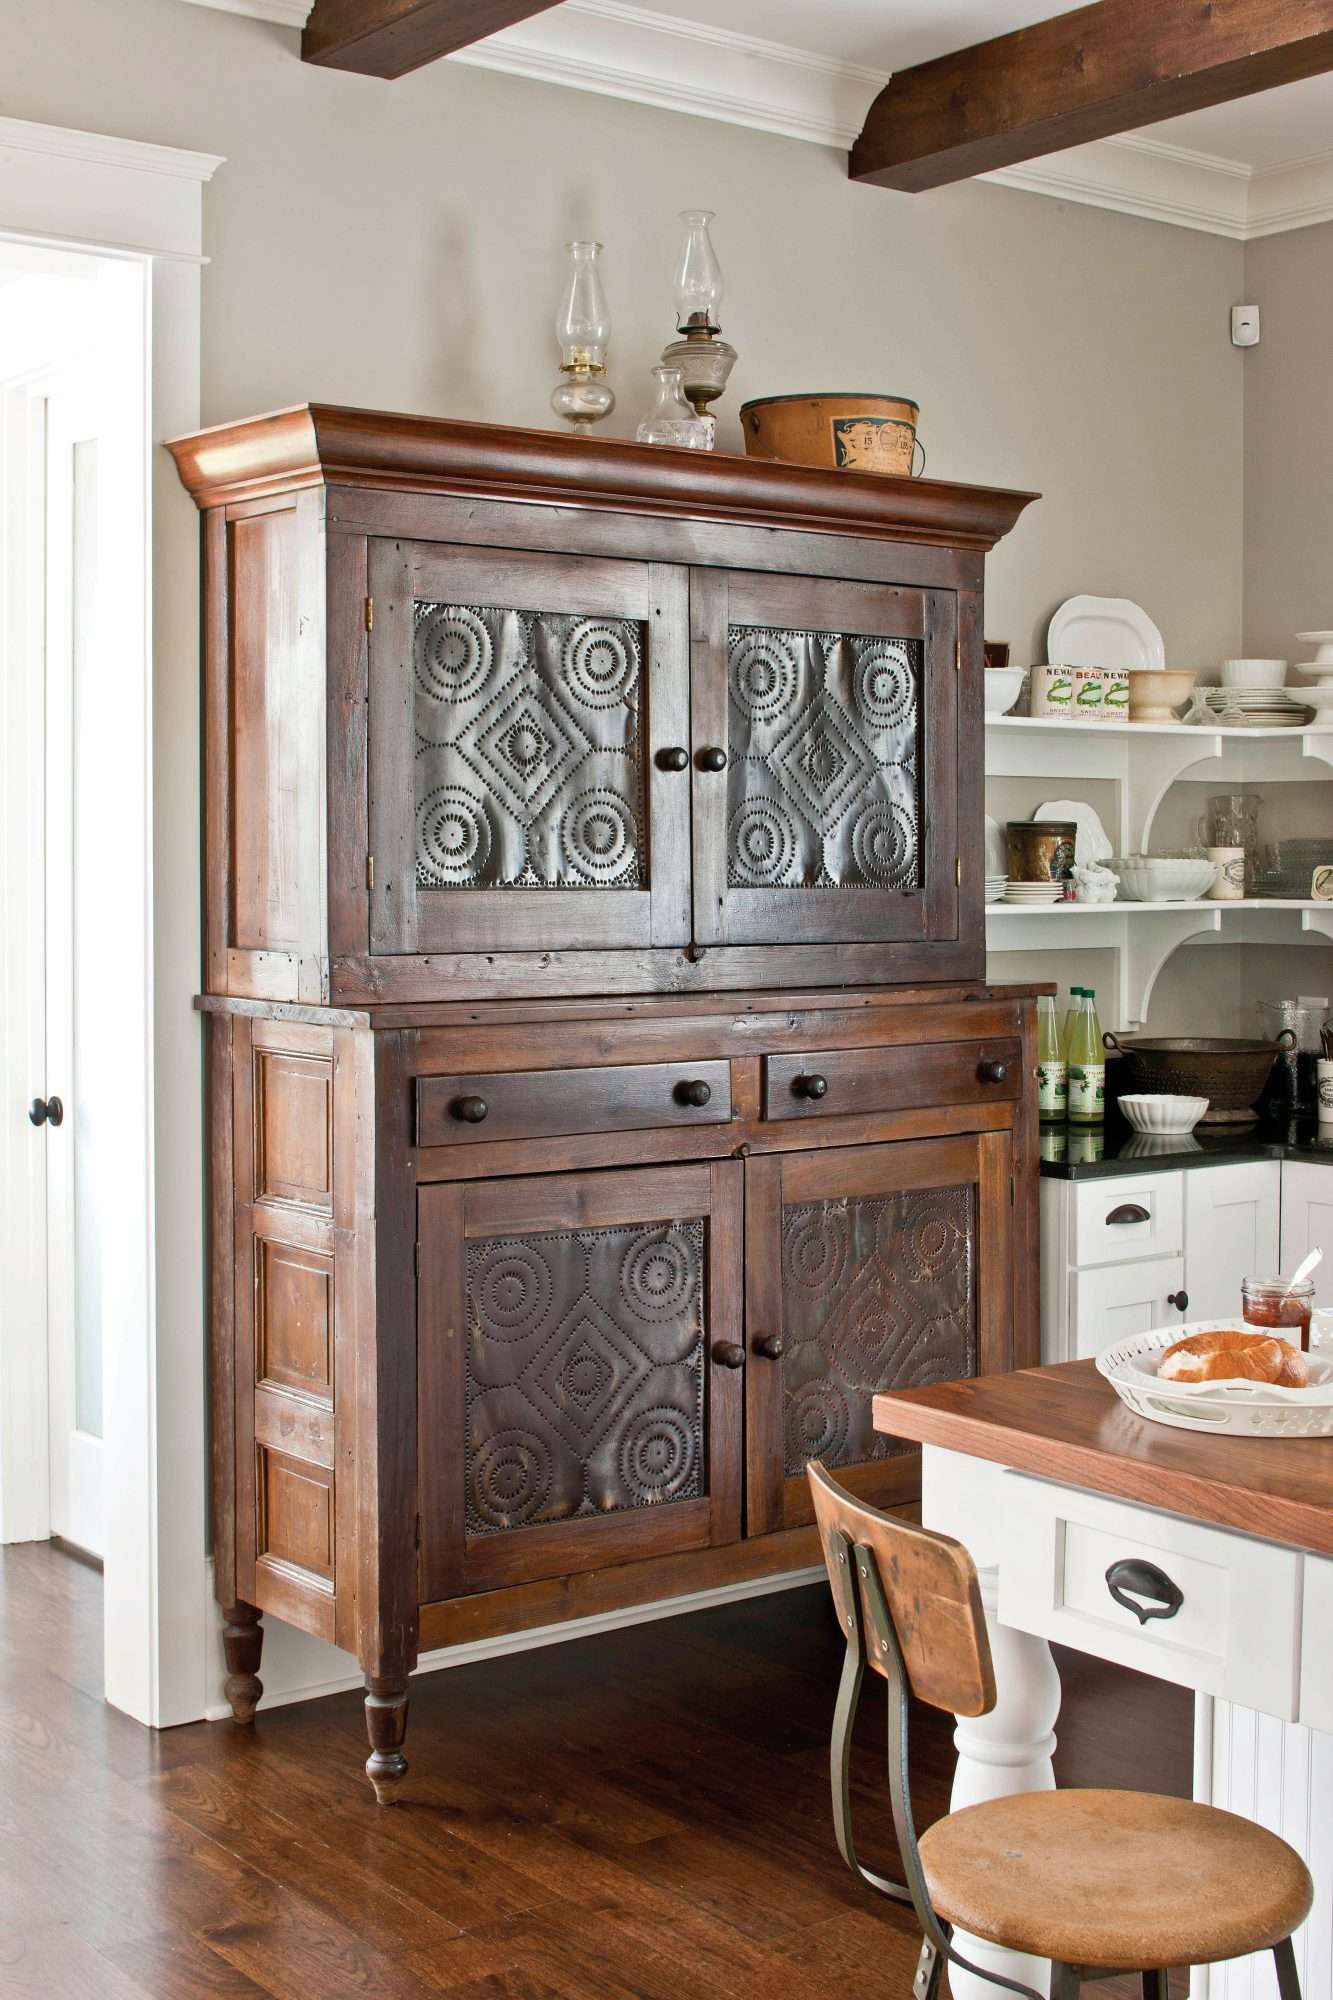 Vintage Pie Safe Cupboard